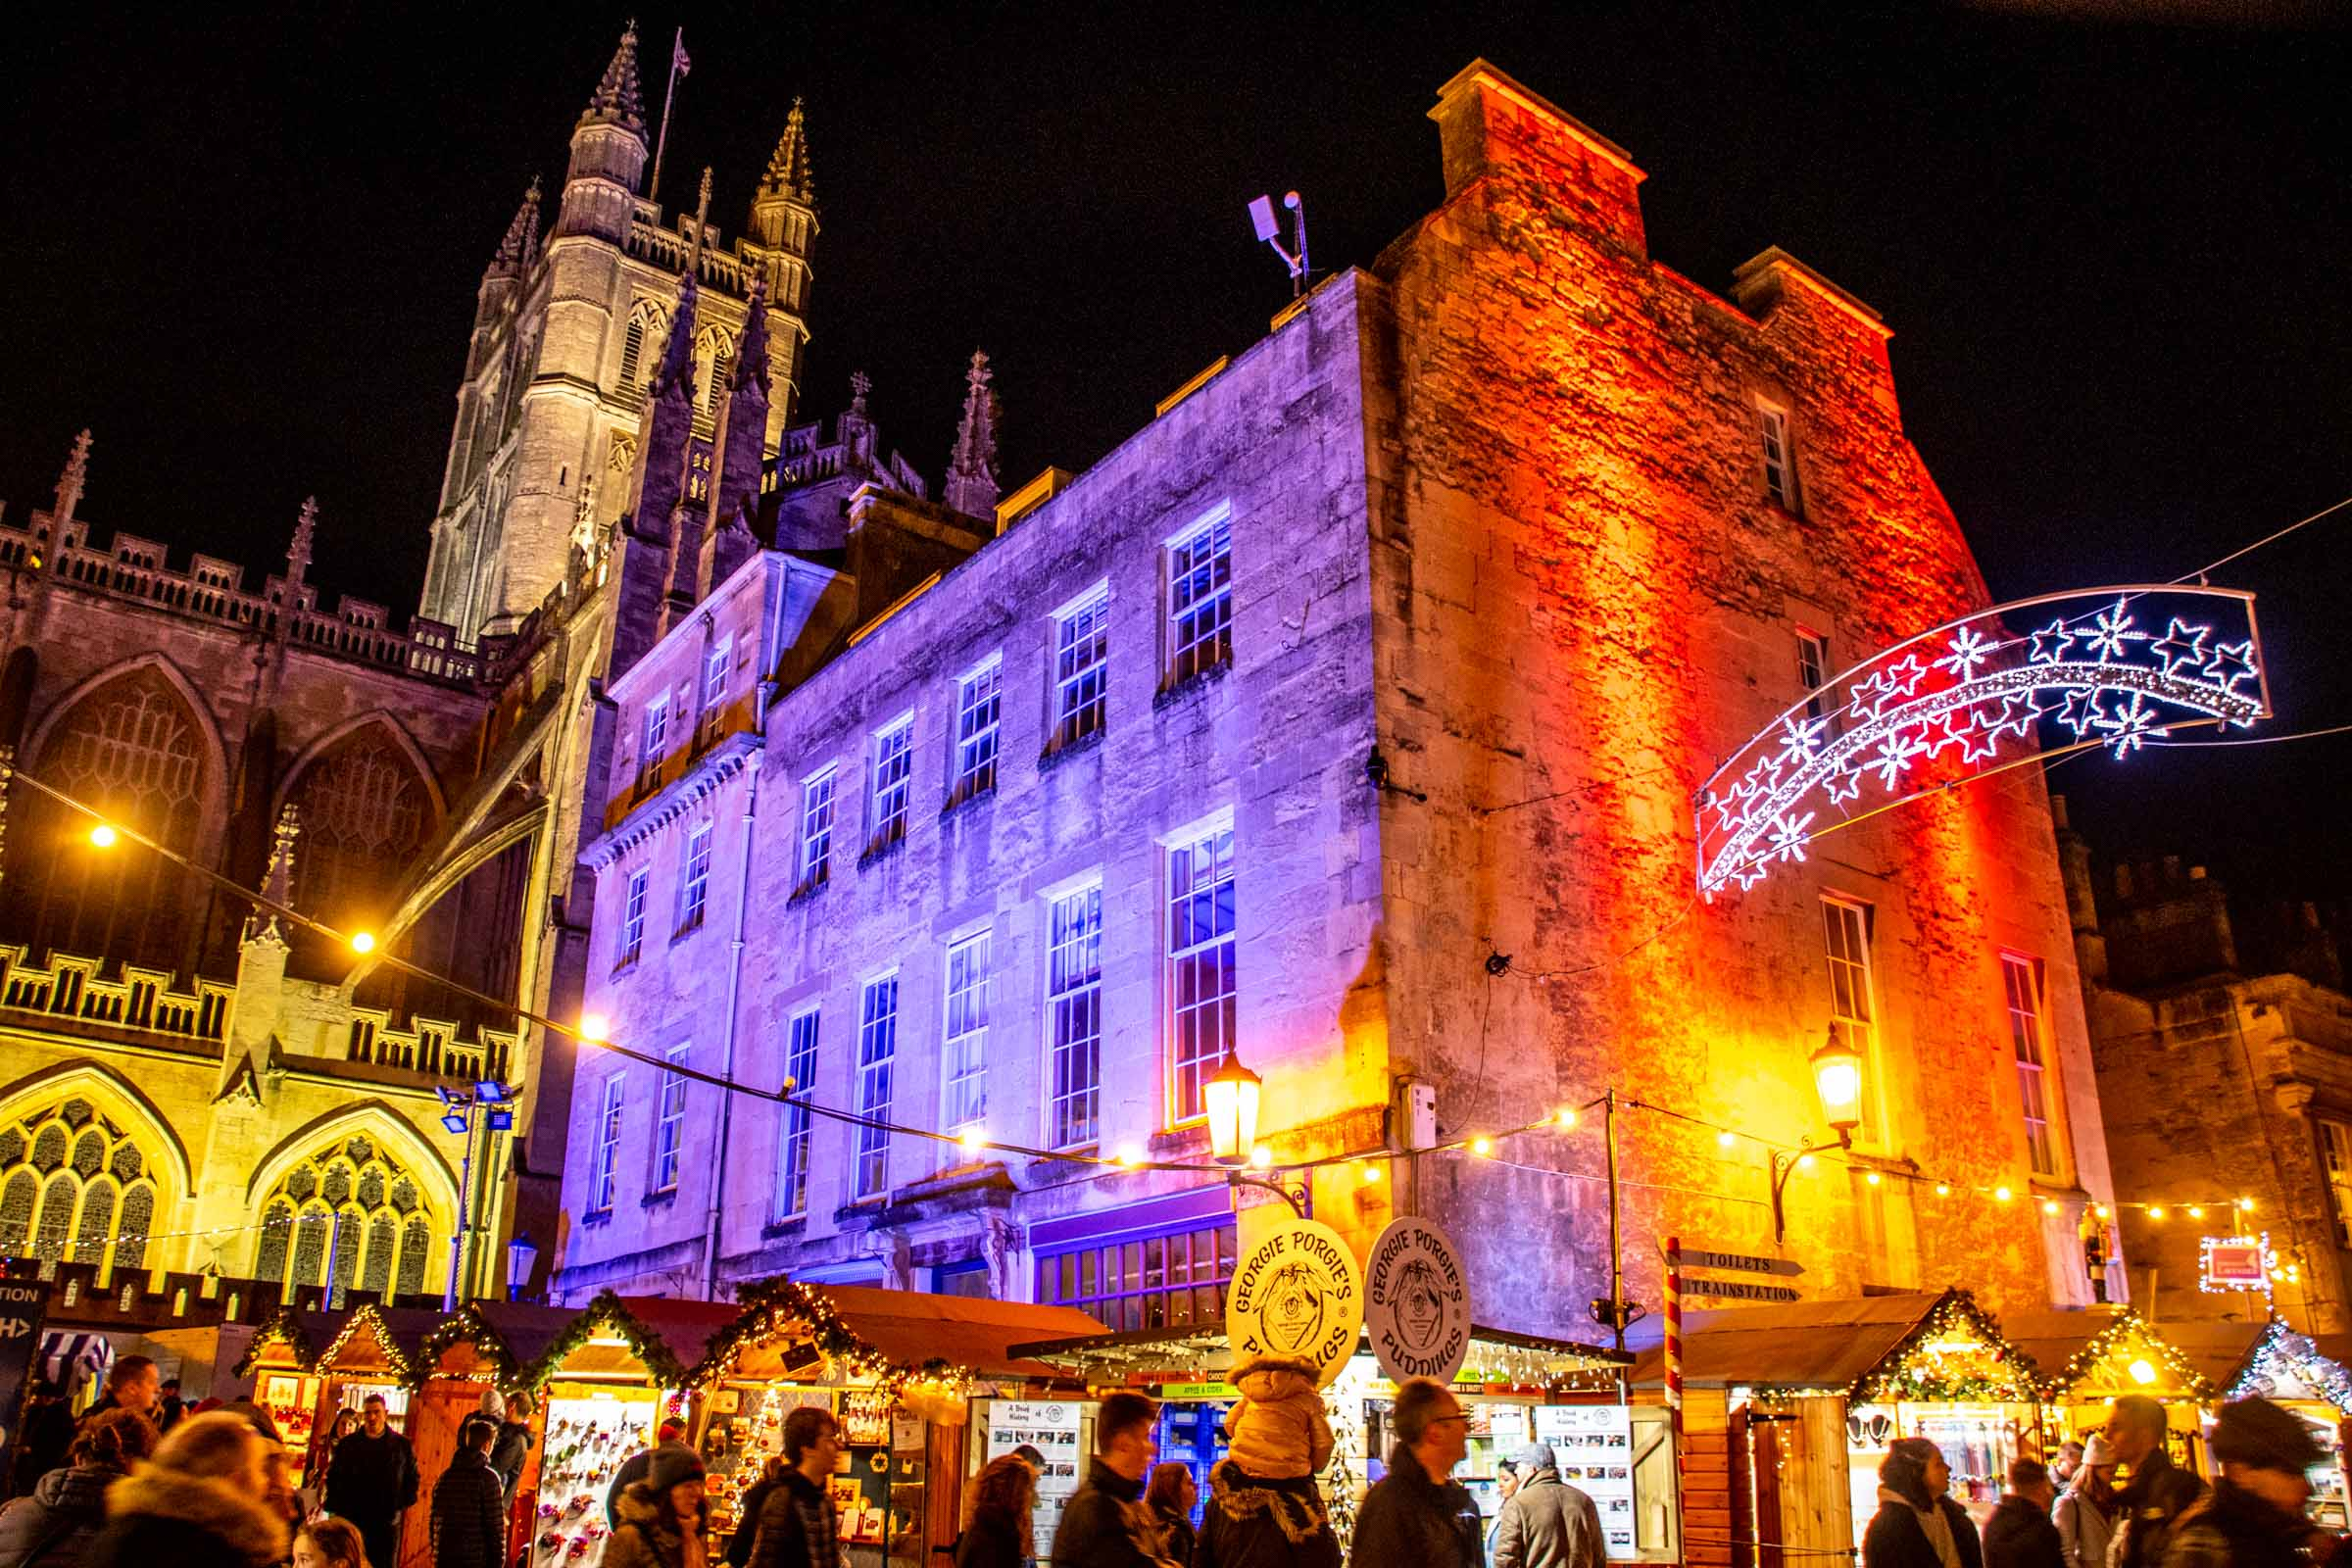 People attending the Bath Christmas market at night in front of Bath Abbey, which is lit up on purple and red lights